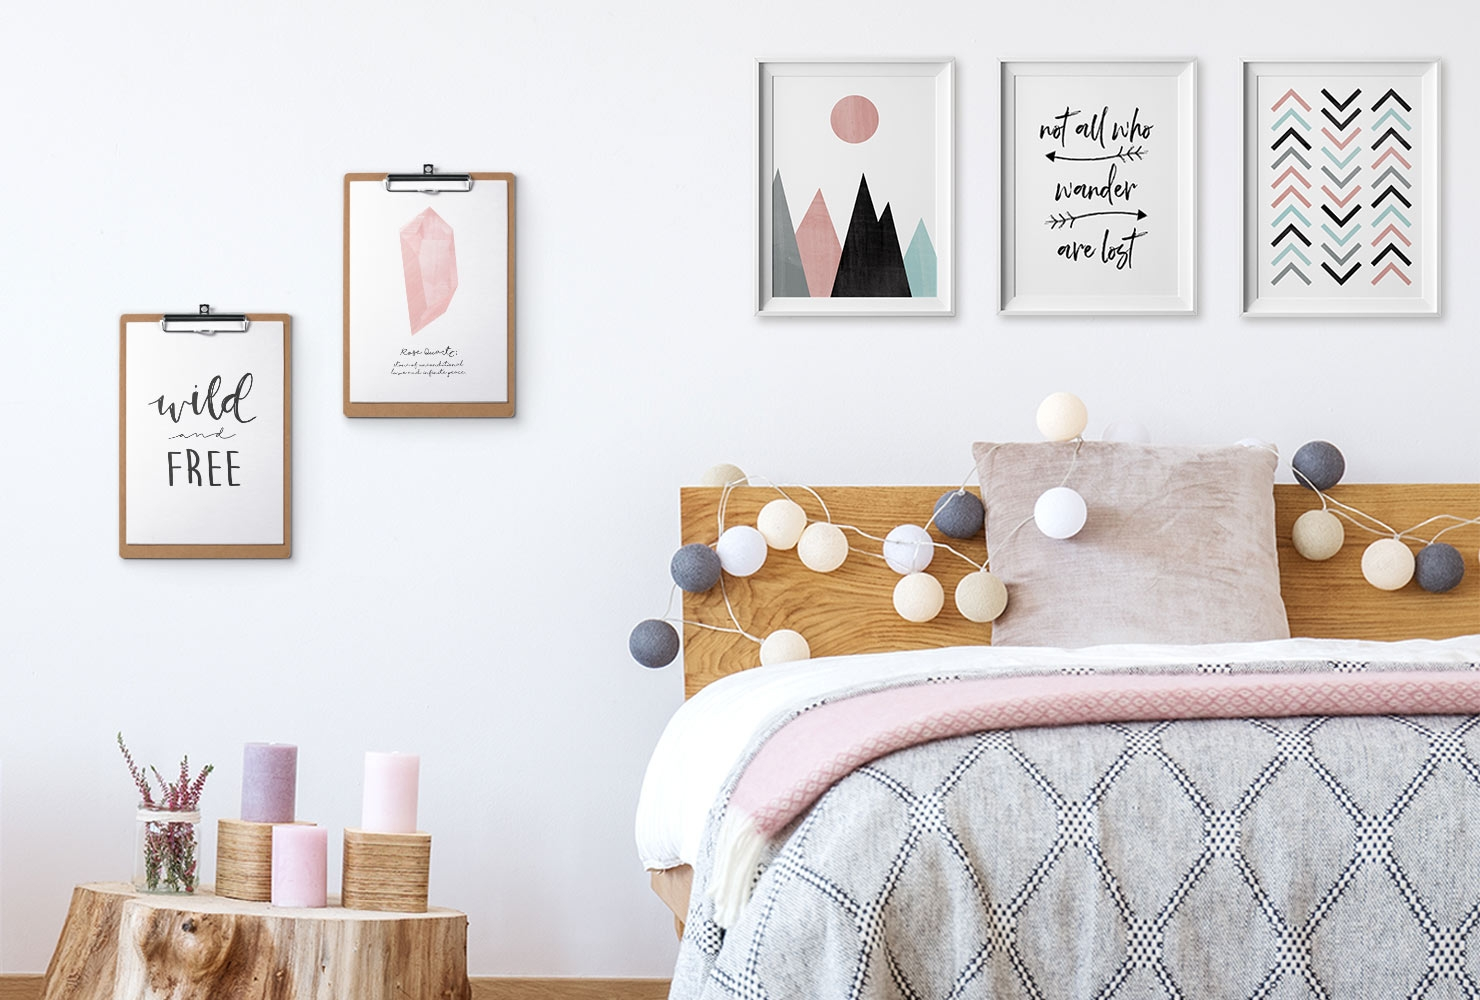 24 diy bedroom decor ideas to inspire you with printables shutterfly